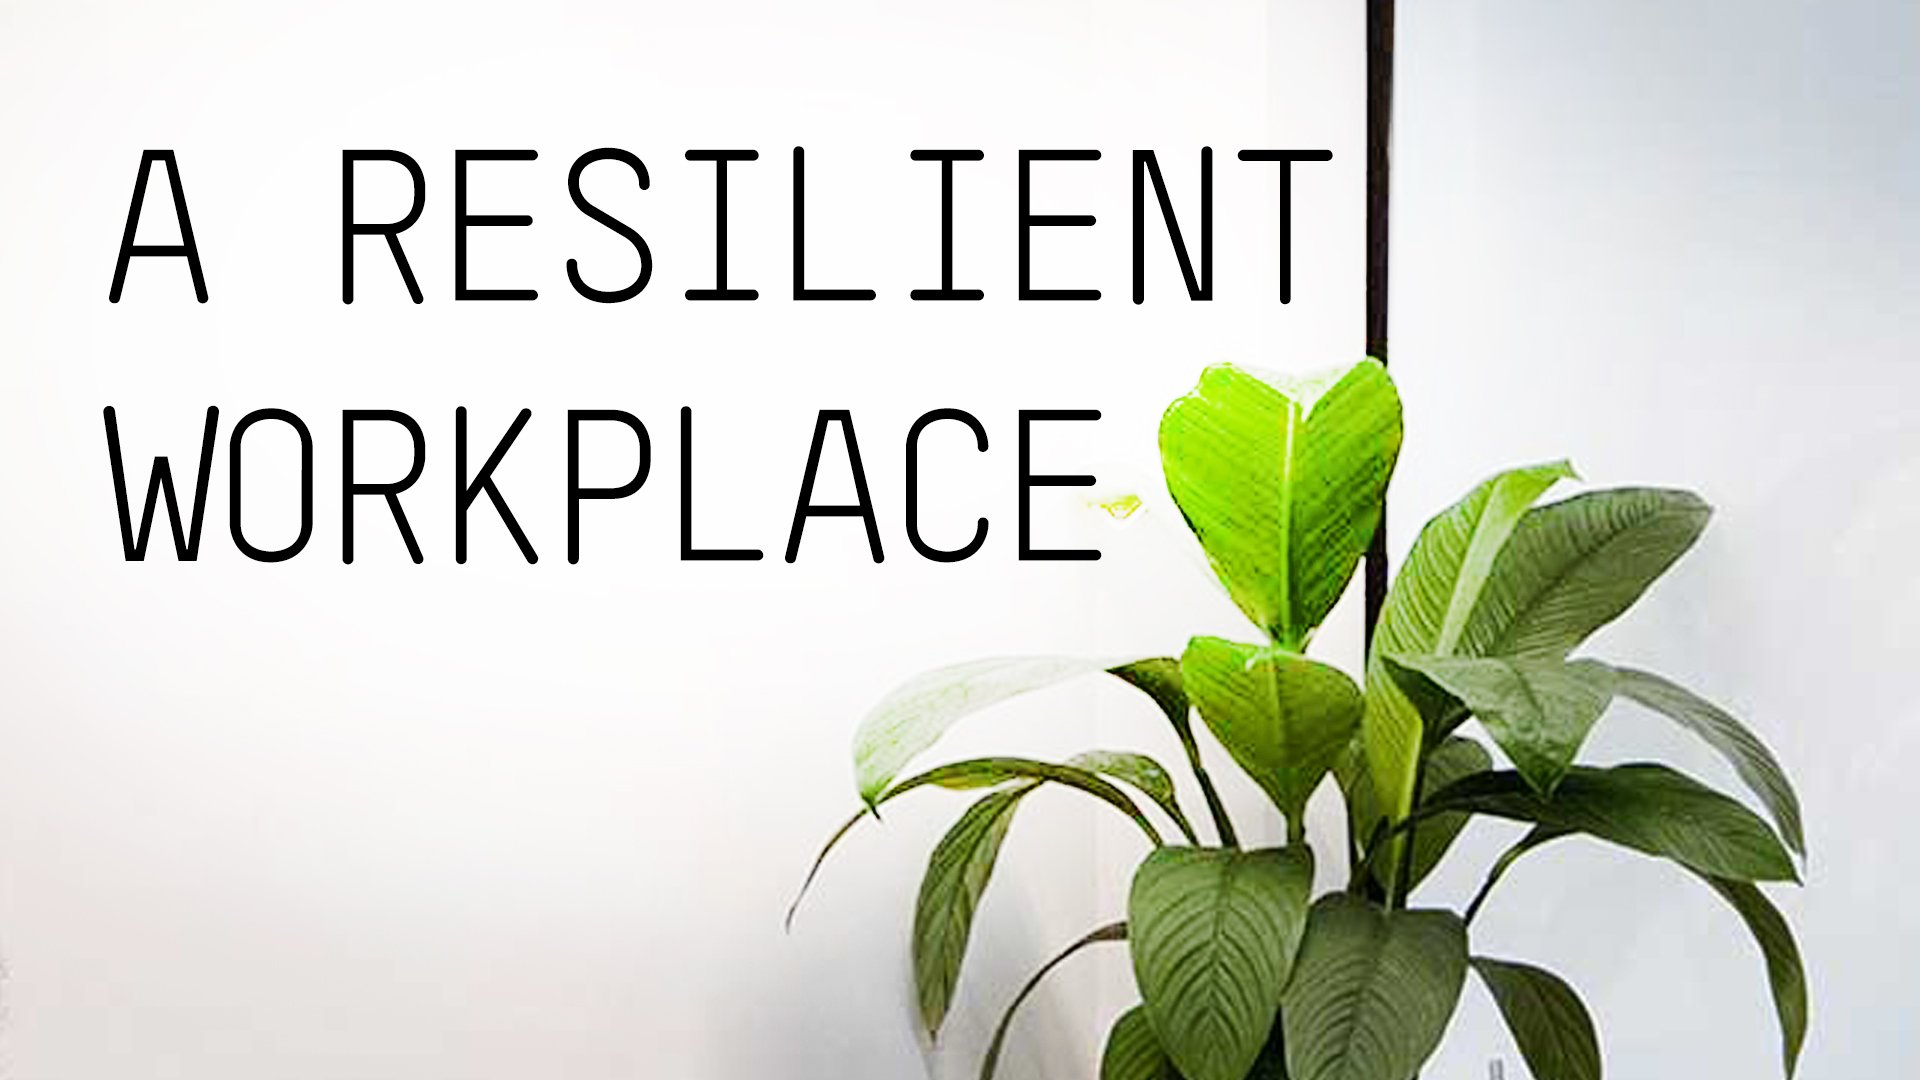 Returning to a resilient workplace